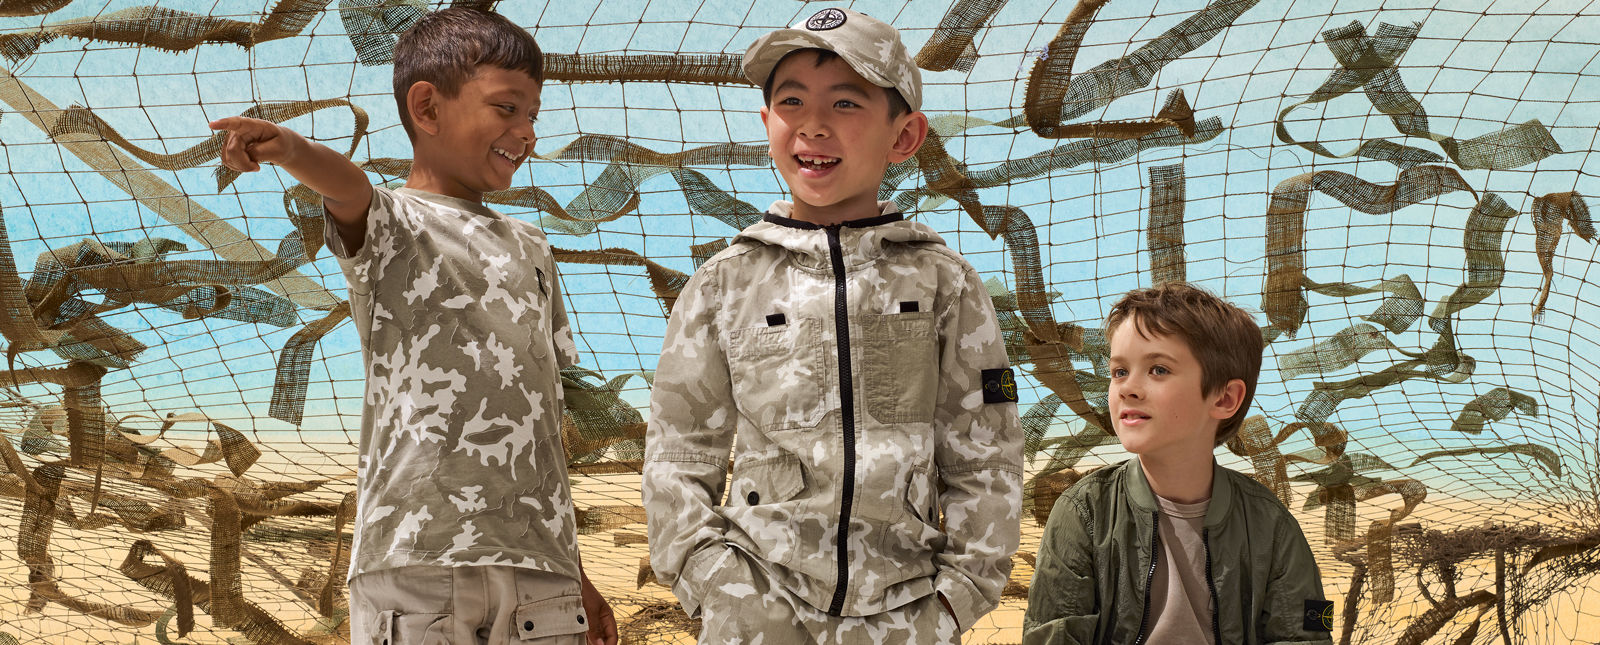 Three junior models, one wearing khaki cargo pants and a camouflage t shirt, another wearing a camouflage jacket with matching pants and cap, and the third wearing a khaki t shirt and military green bomber jacket.